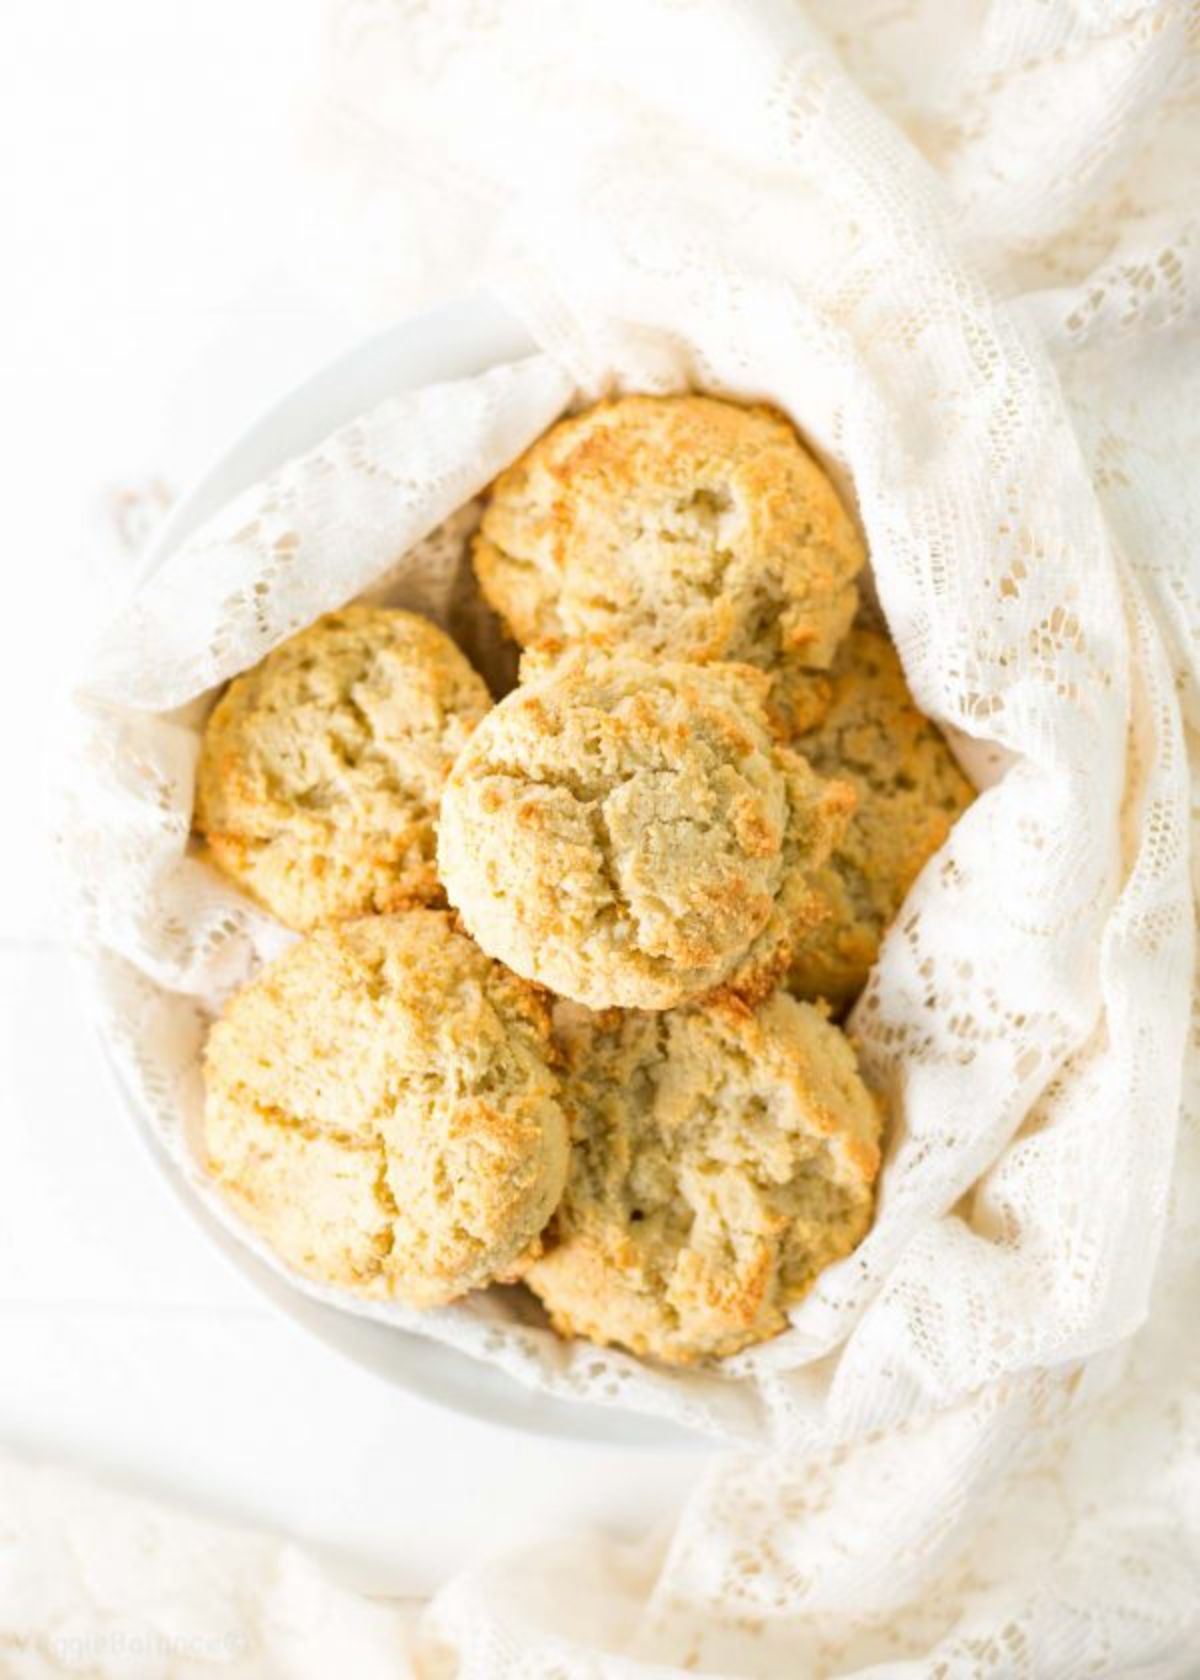 a cloth-covered basket containing a pile of biscuits